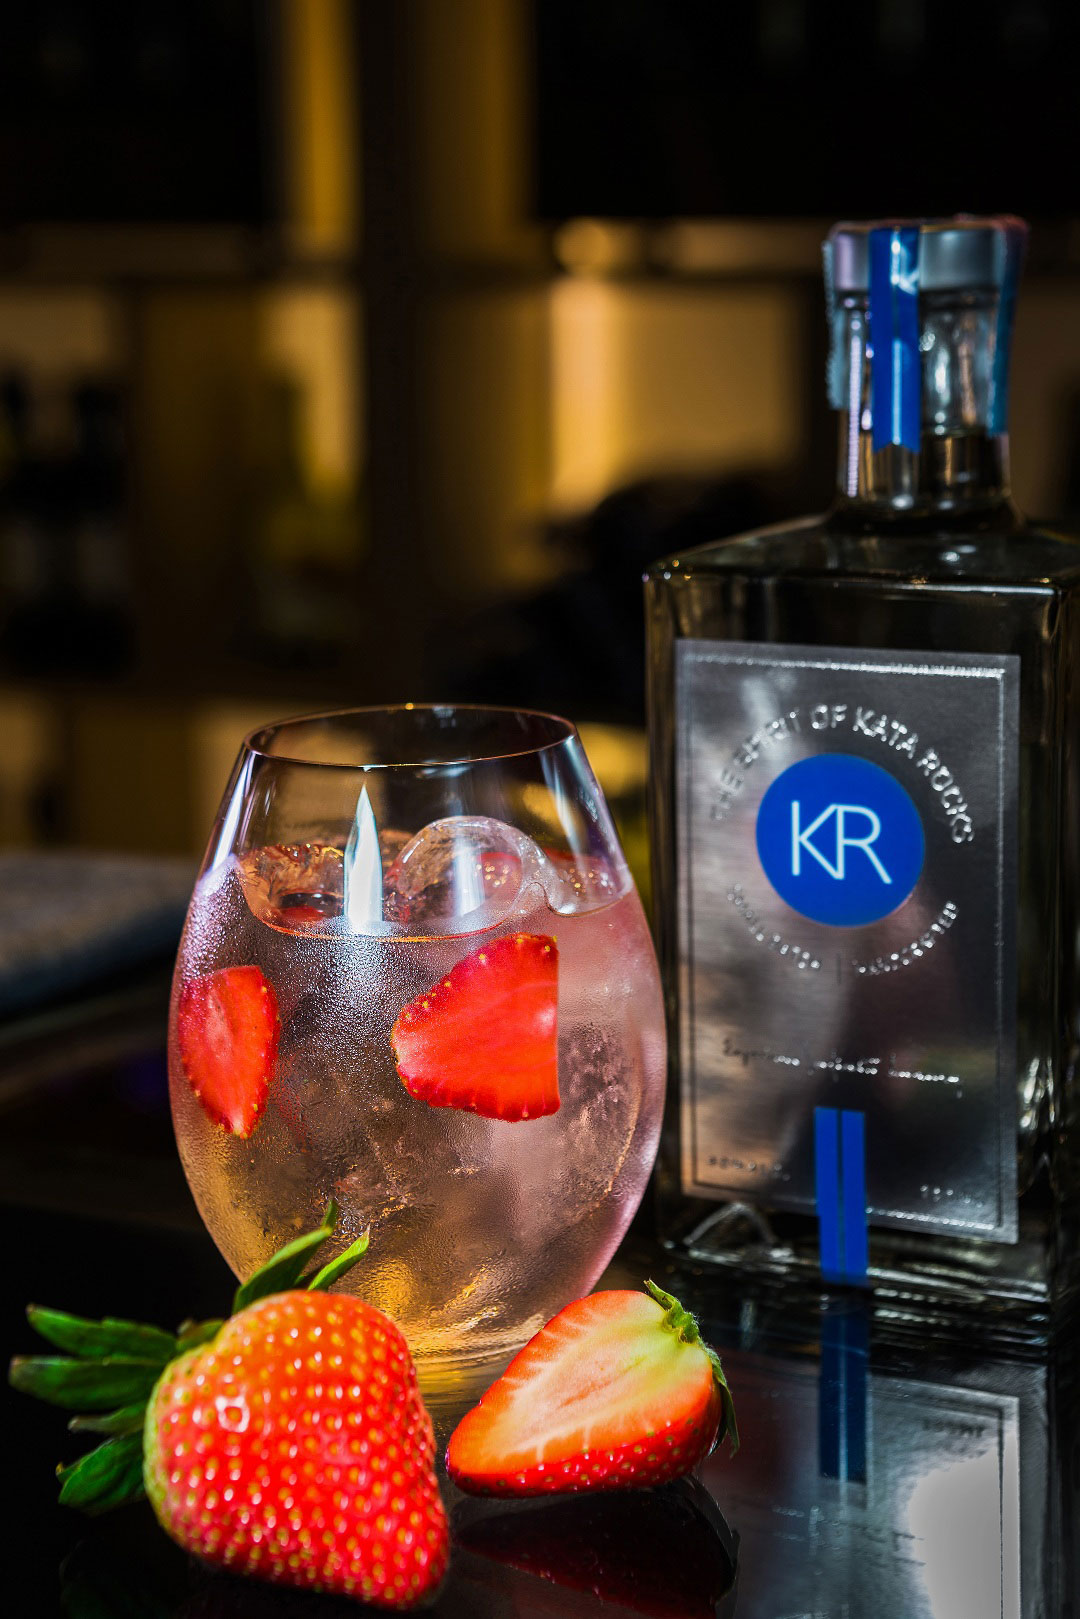 Organic Chiang Mai strawberries are featured as a natural sweetener in a Kata Rocks Gin & Tonic